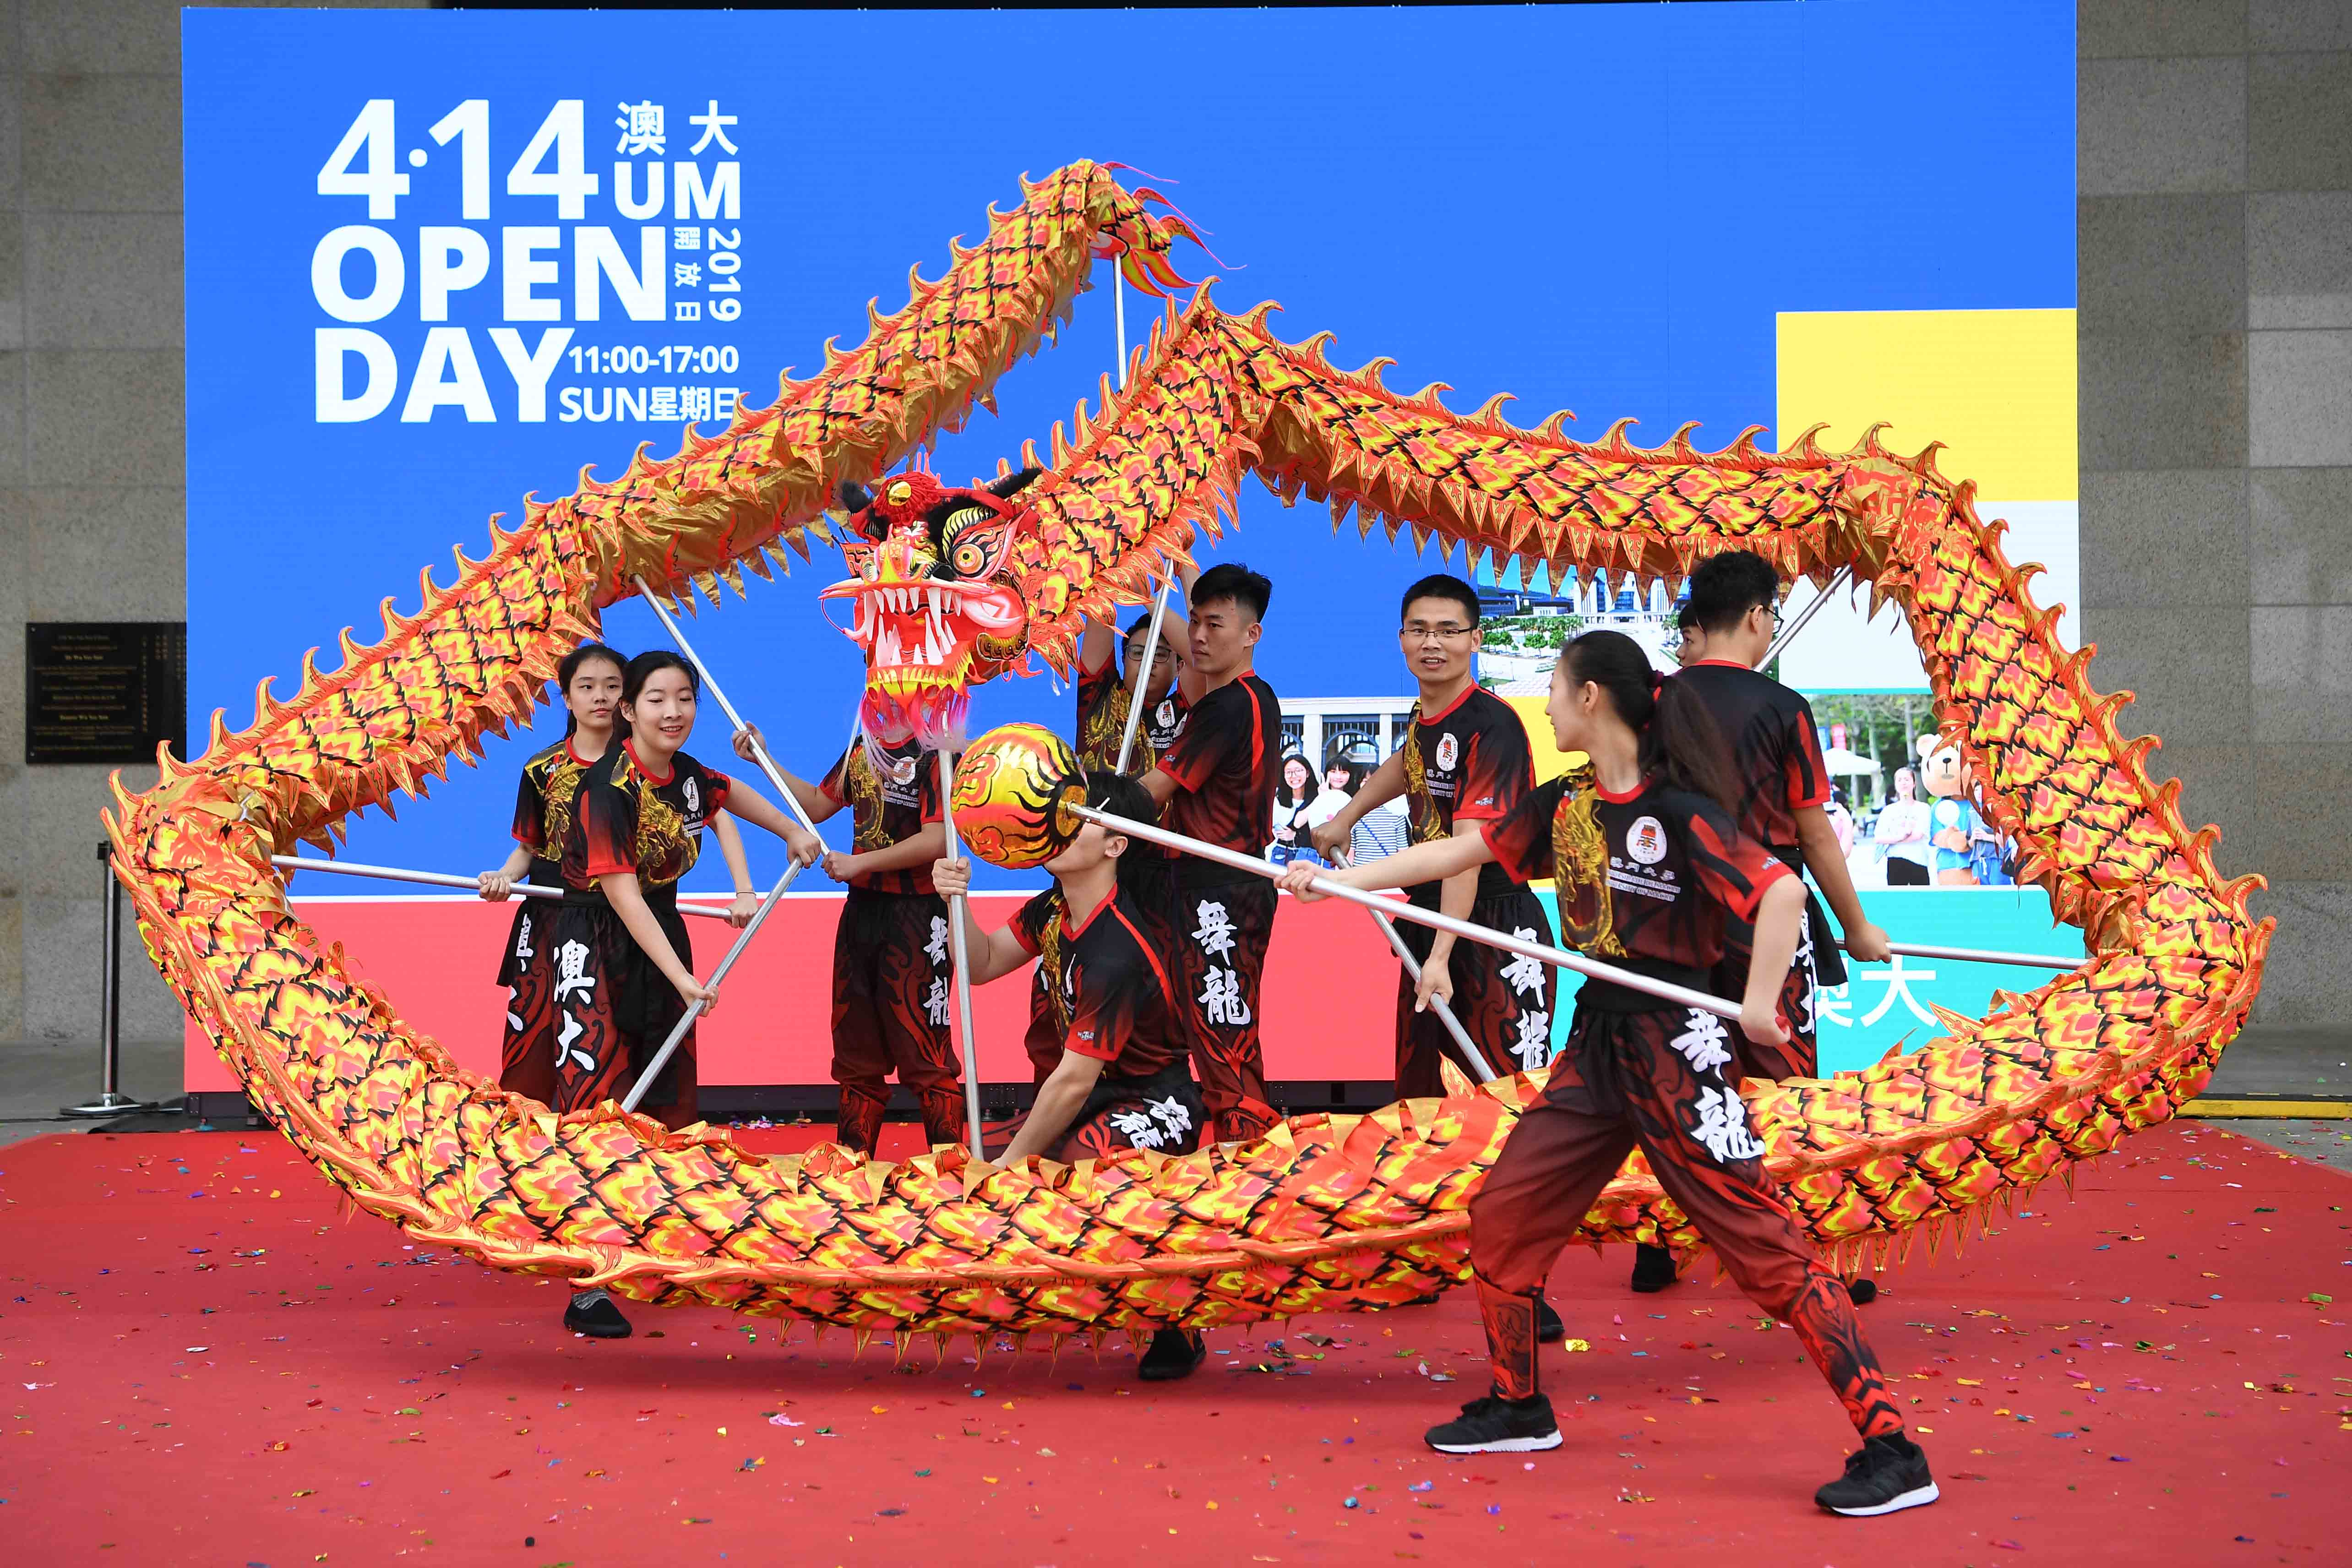 A dragon dance performance by students